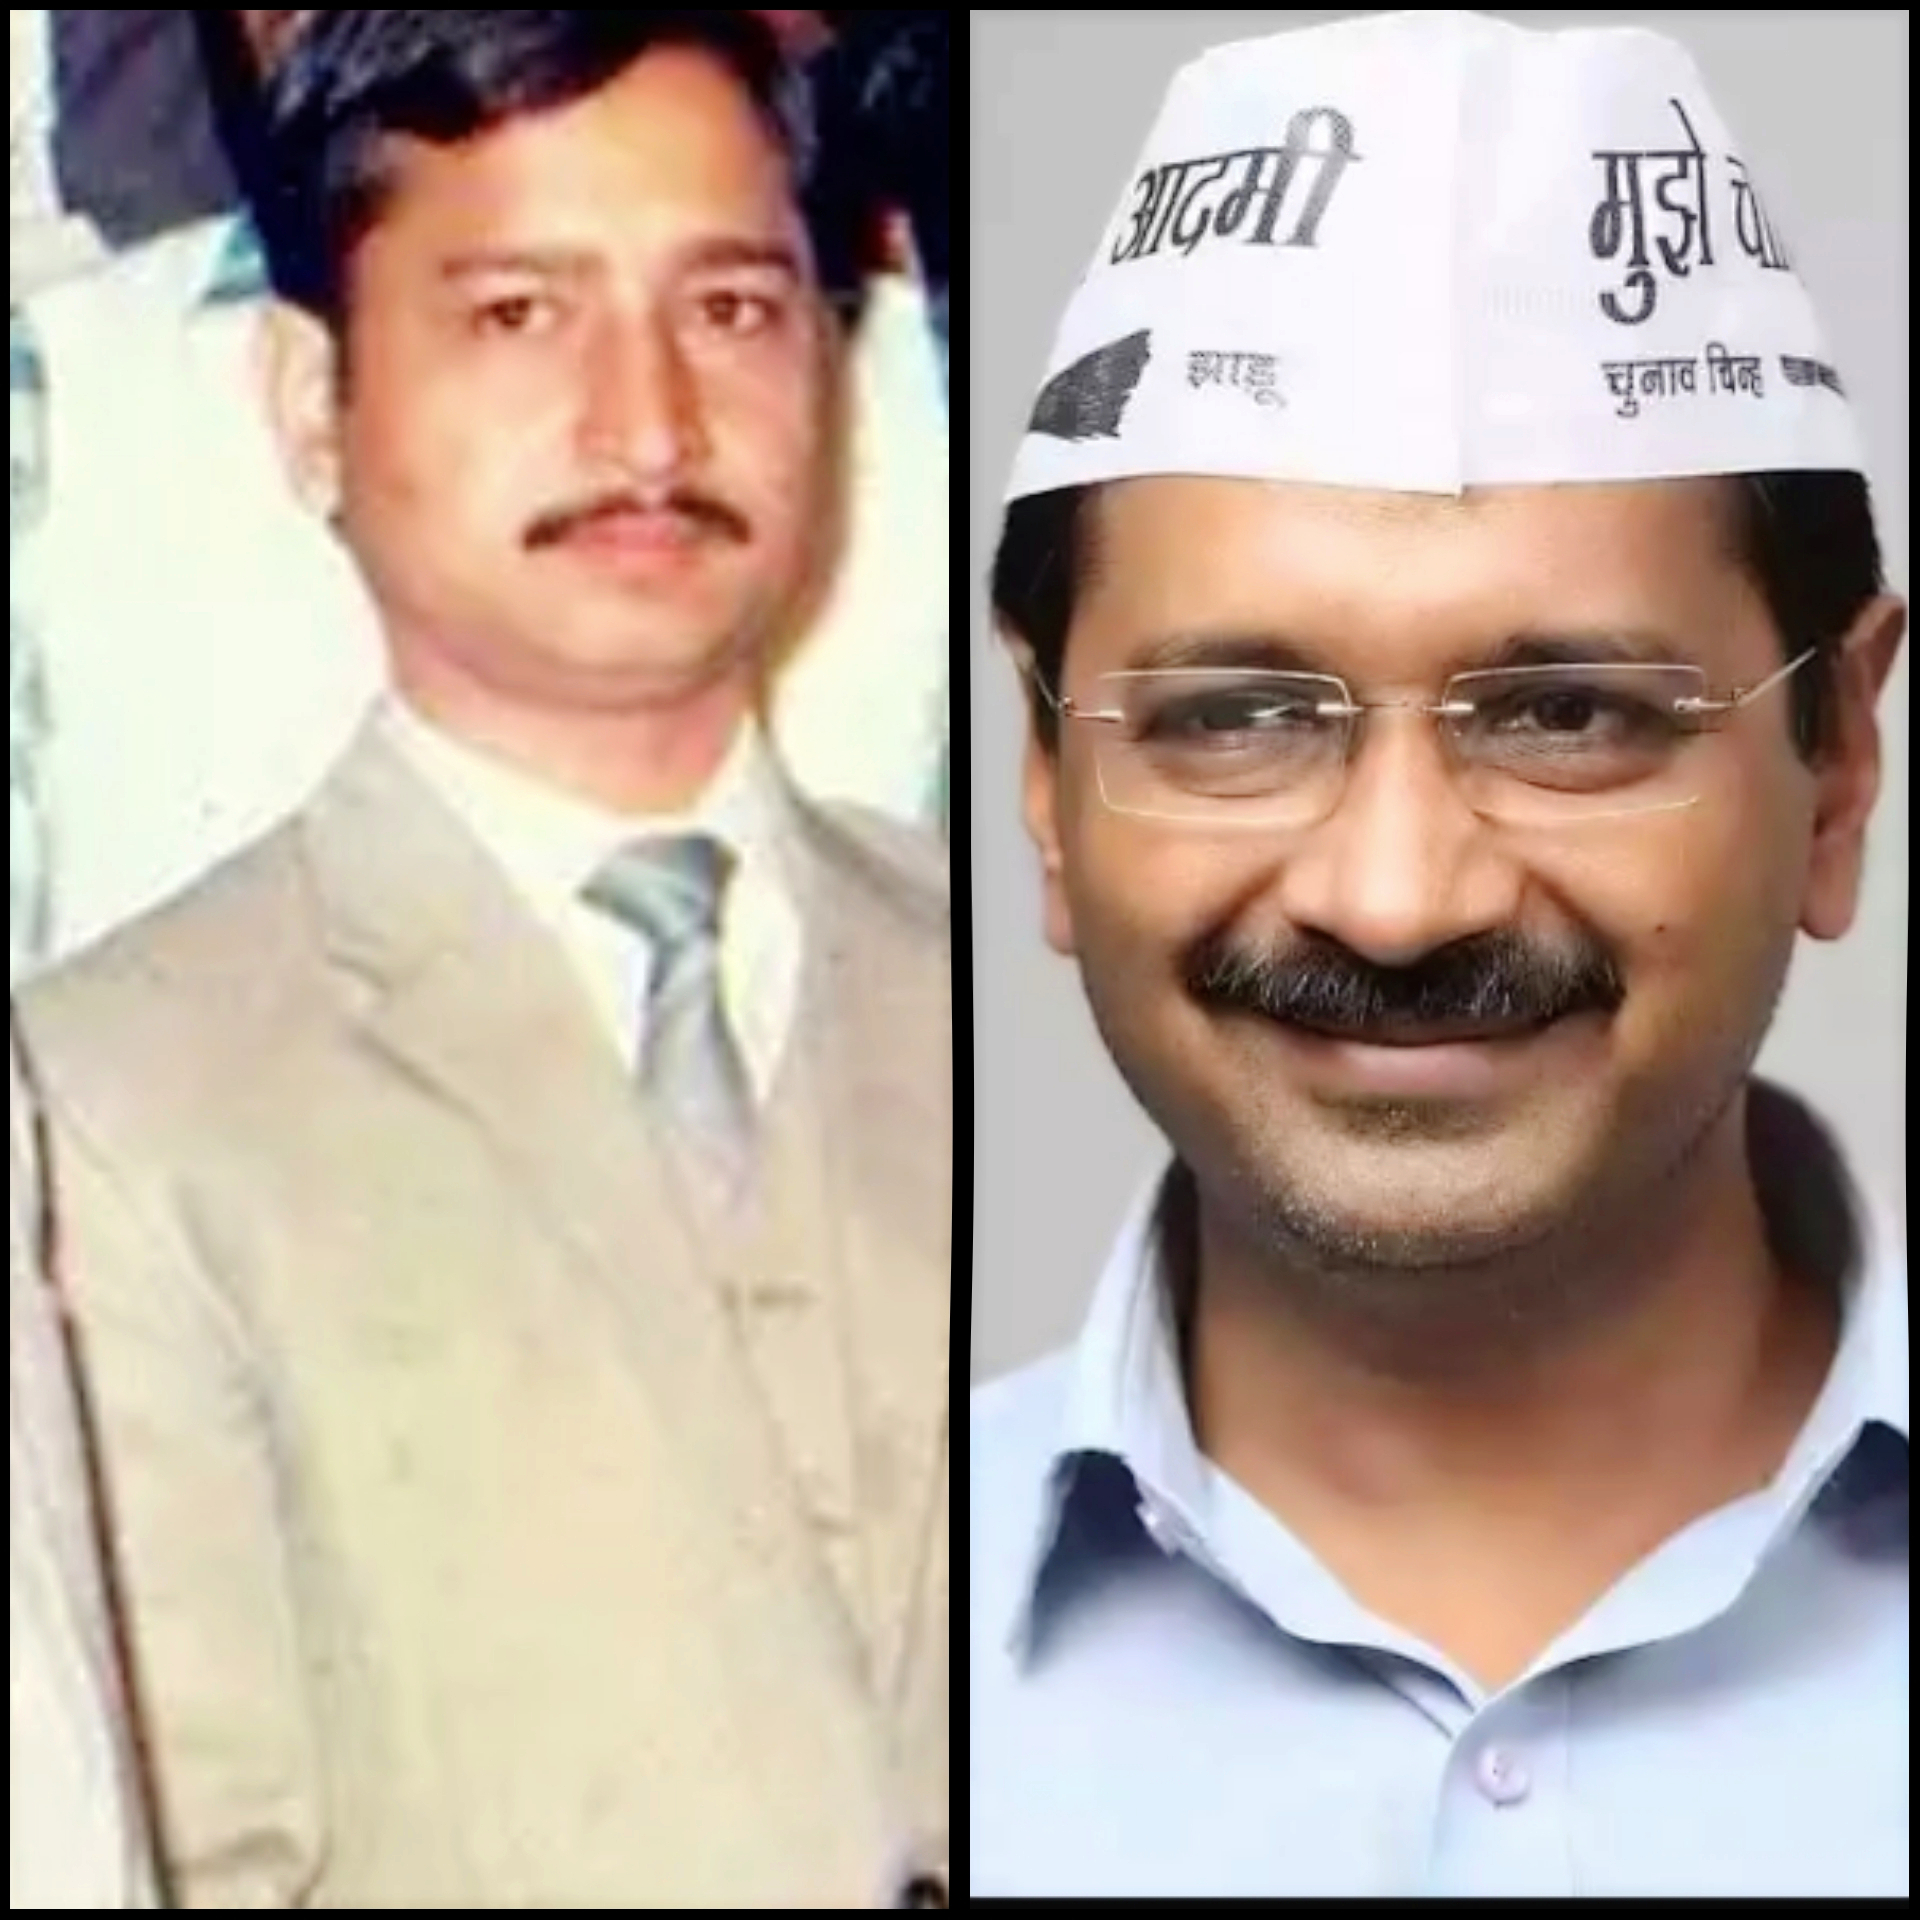 arvind kejriwal, Indian Politicians, politics, unseen pictures, rare pictures,vintage pictures of Indian Politicians